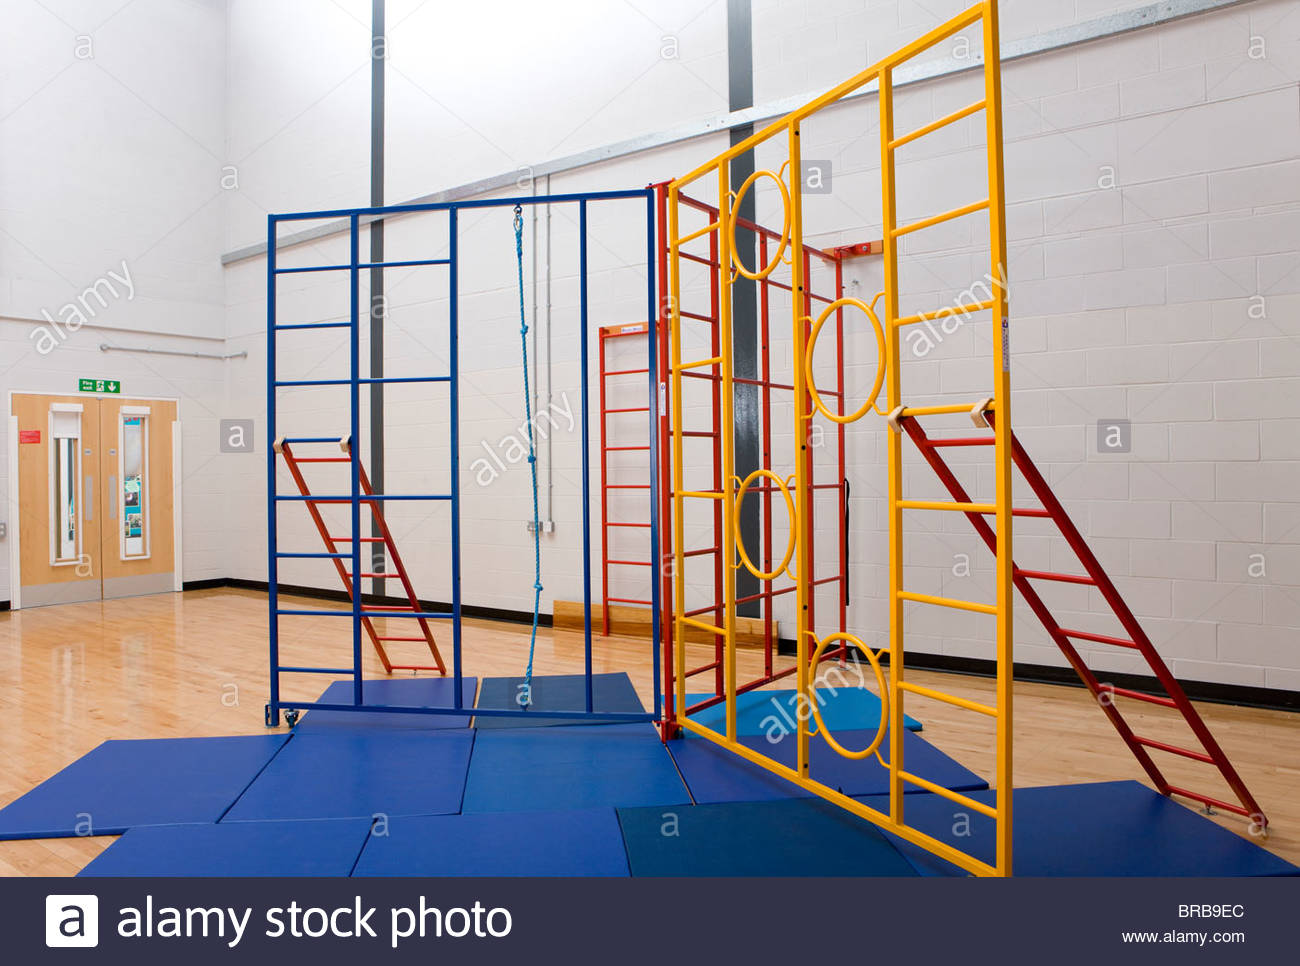 Climbing equipment and exercise mats in school gymnasium - Stock Image